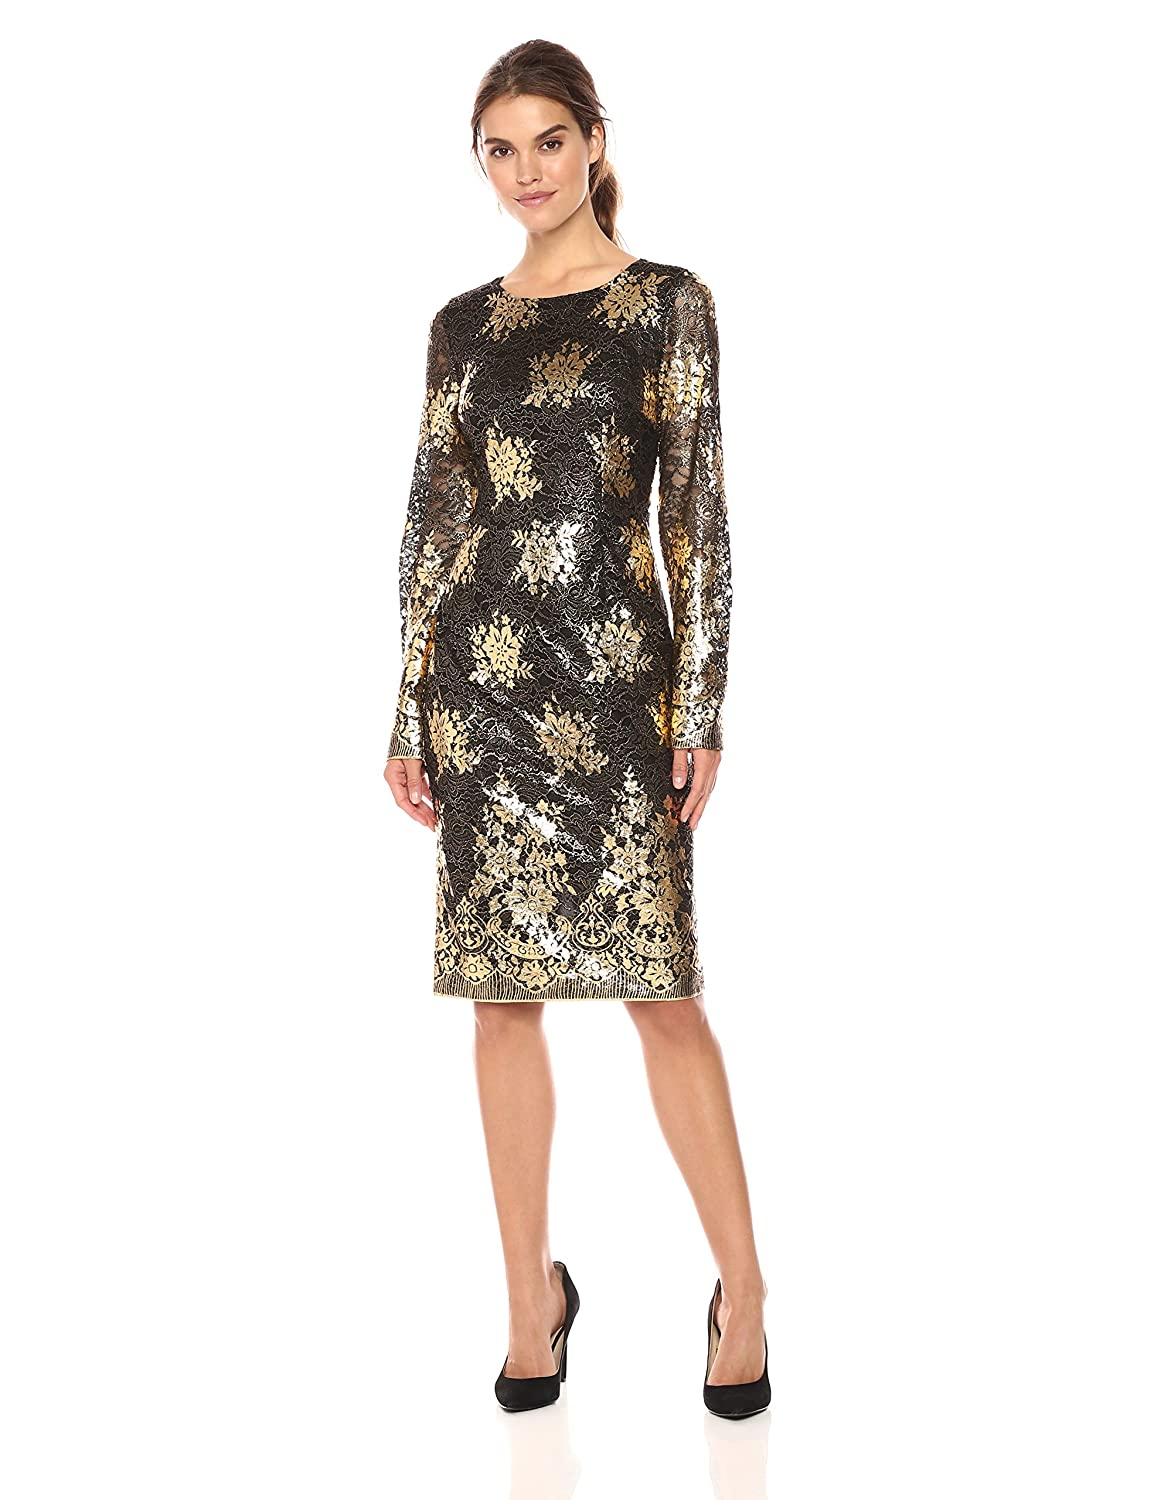 7ced07b4ad9 Nicole Miller New York Women s Long Sleeve Metallic Lace Fitted Cocktail  Dress at Amazon Women s Clothing store